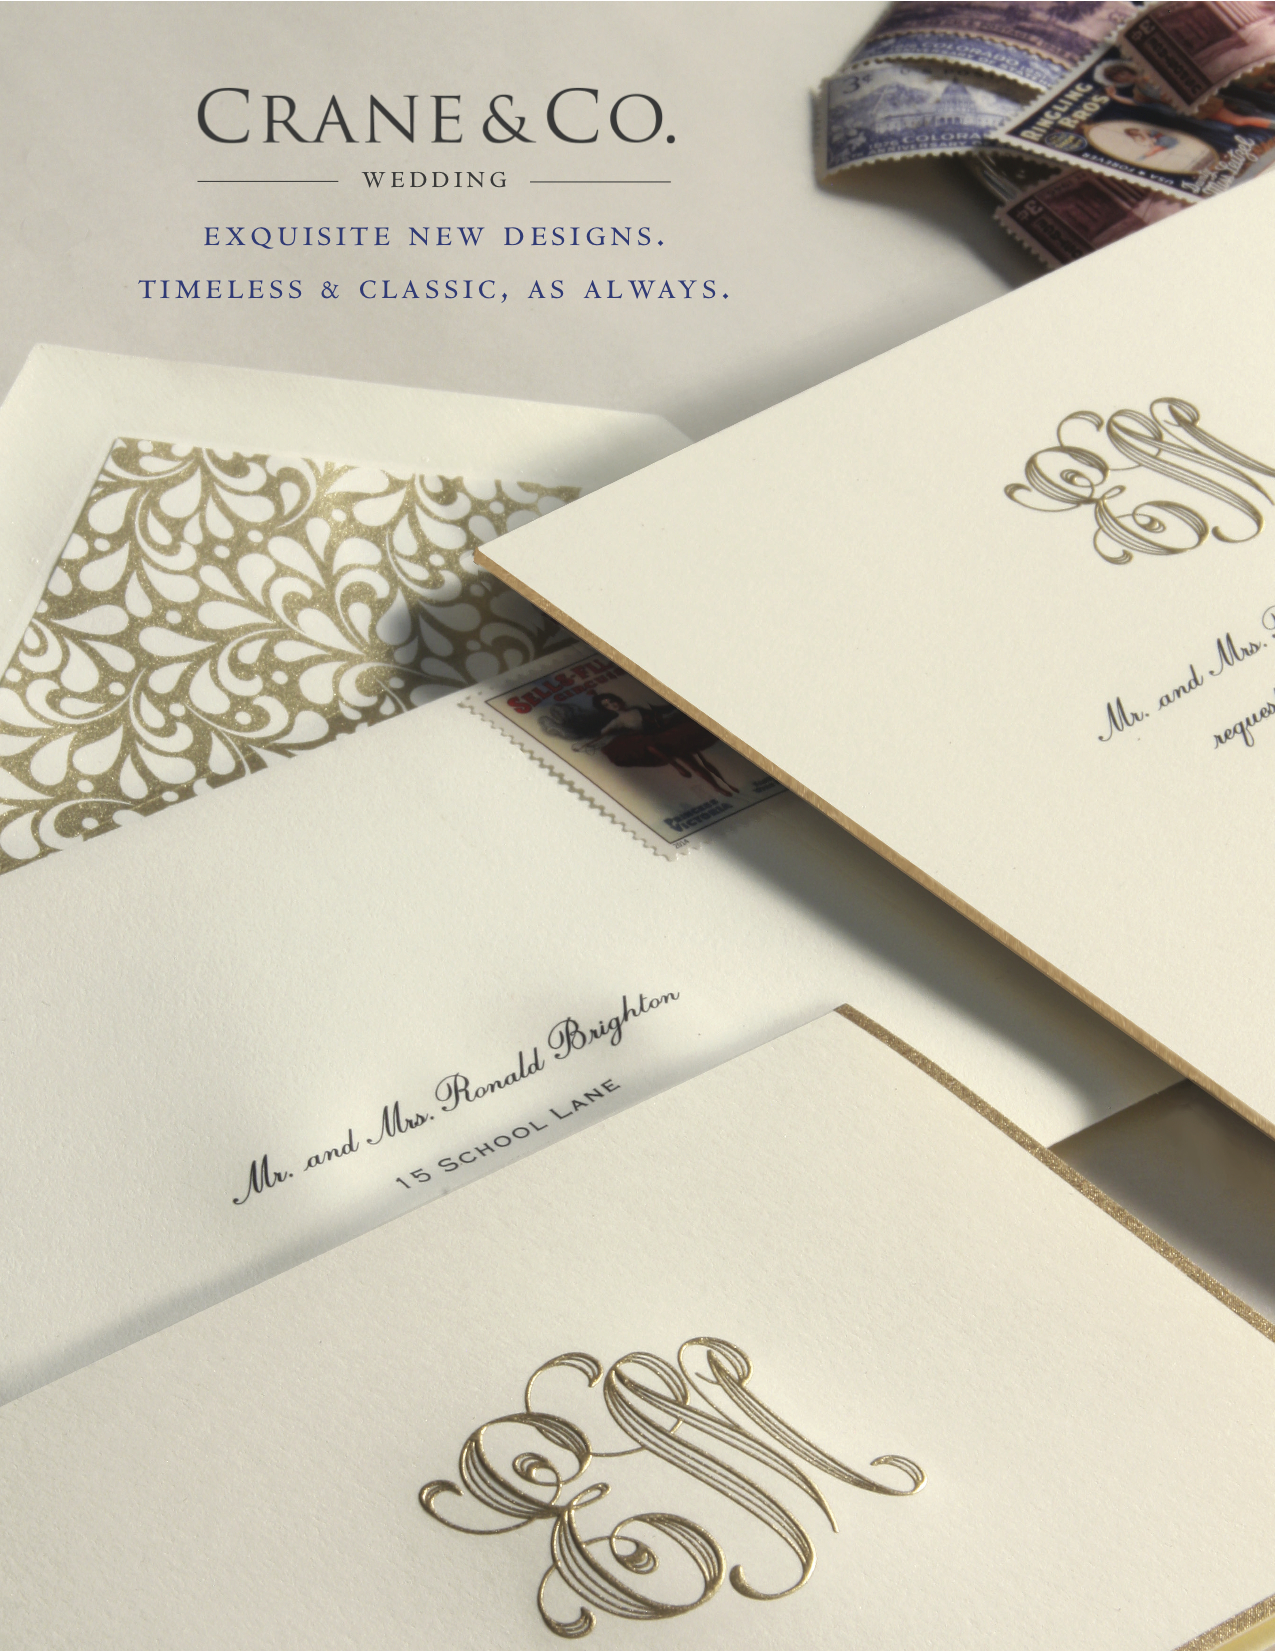 Crane Wedding Invitations San Diego